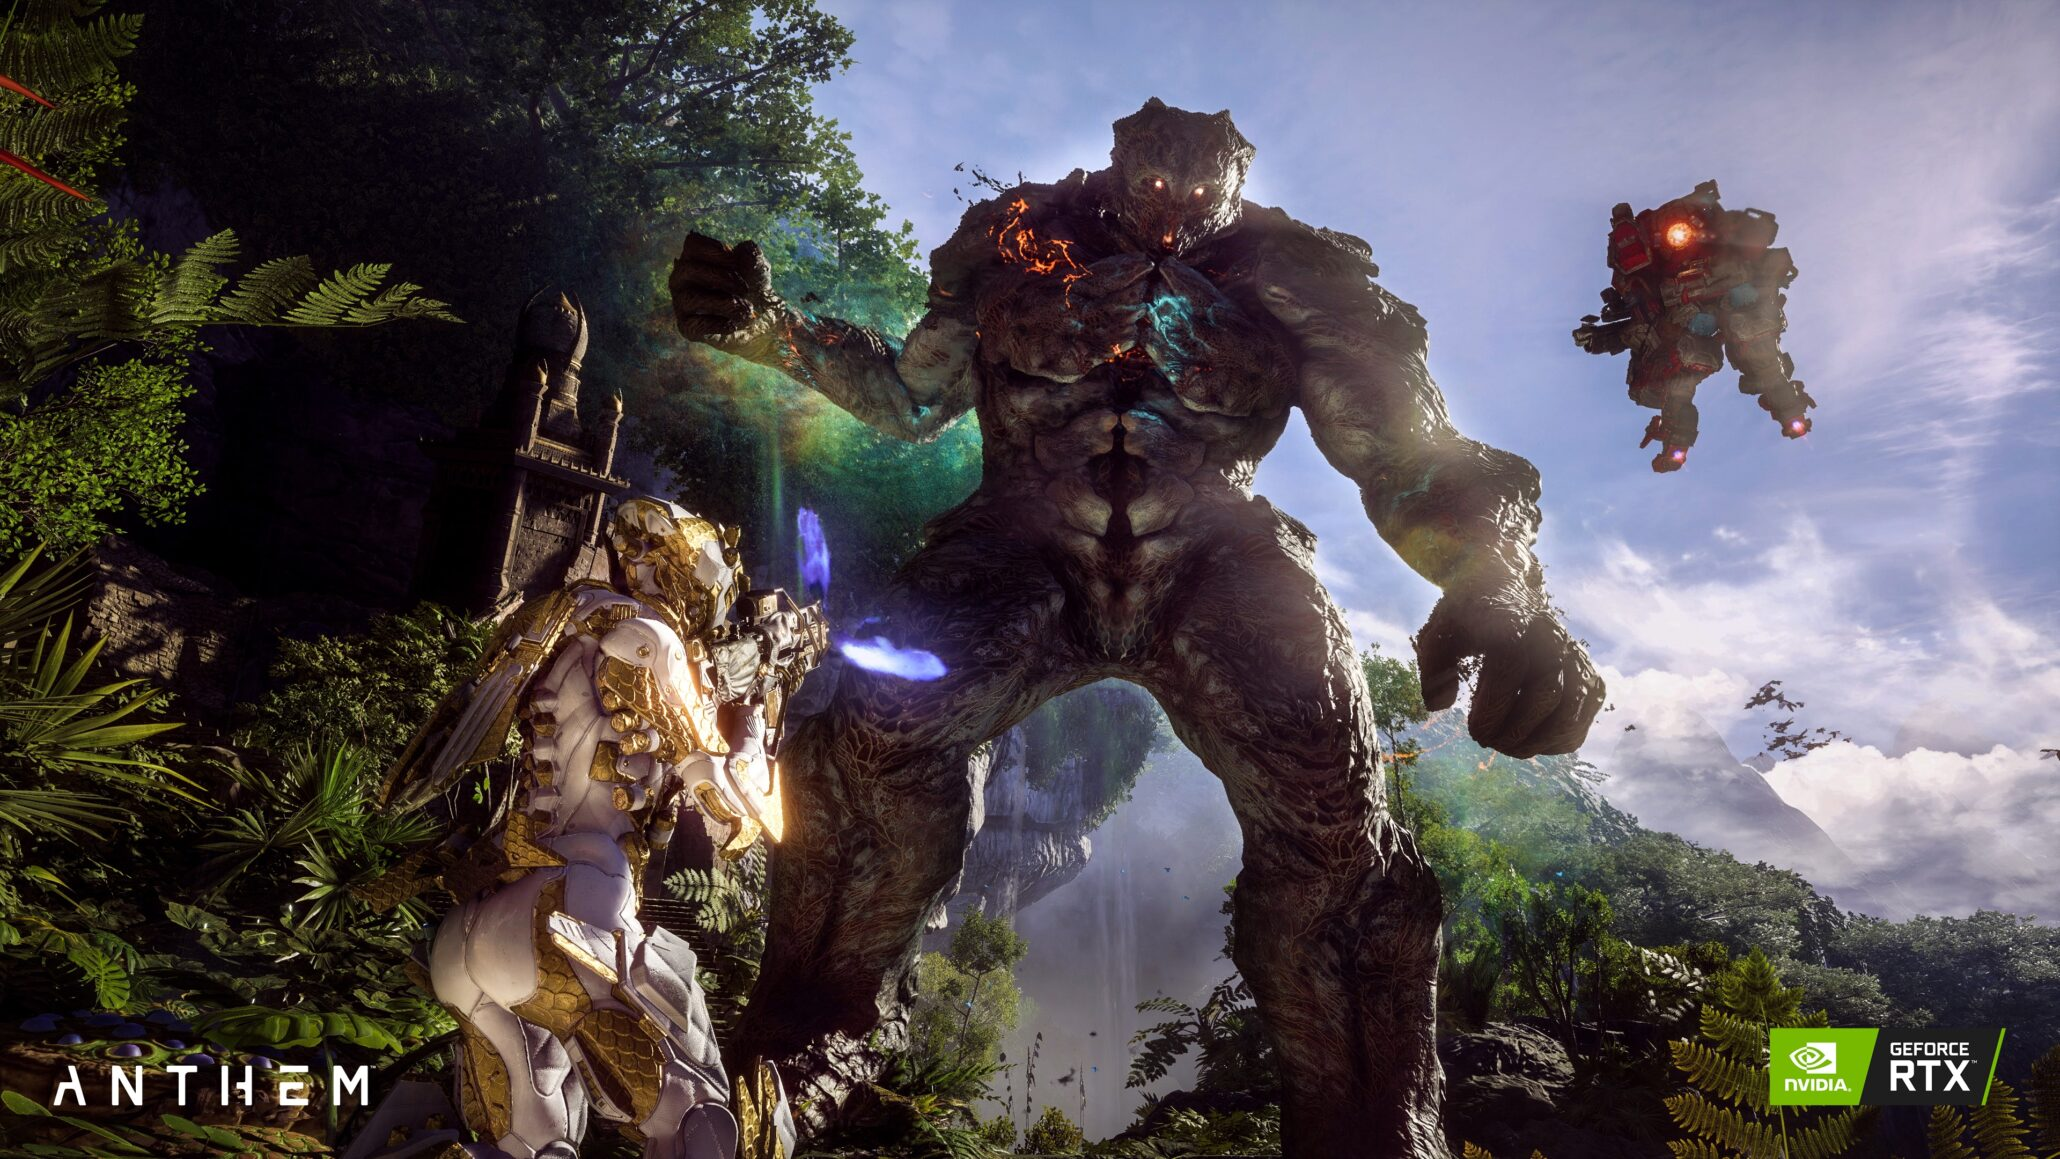 Nvidia Dlss Available Now In Anthem Delivering Up To 40 More